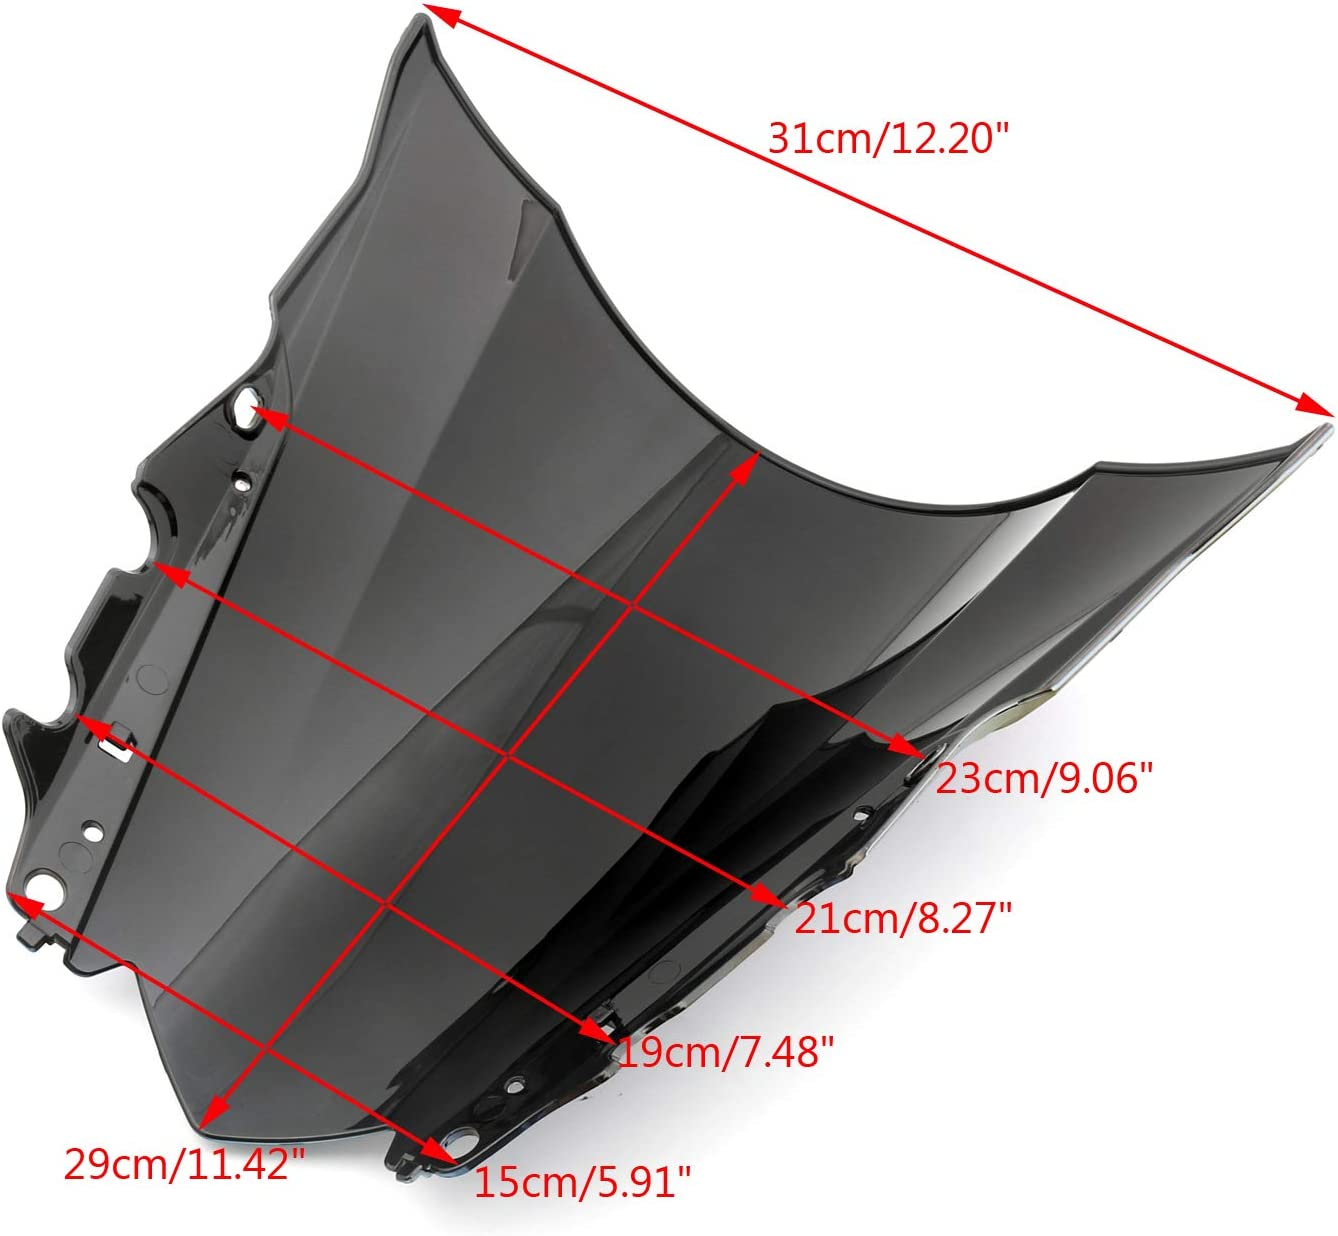 Artudatech Windshield Windscreen For Yamaha YZF-R25 2014-2016 YZF-R3 2015-2016丨ABS Plastic Injection丨2014 2015 2016